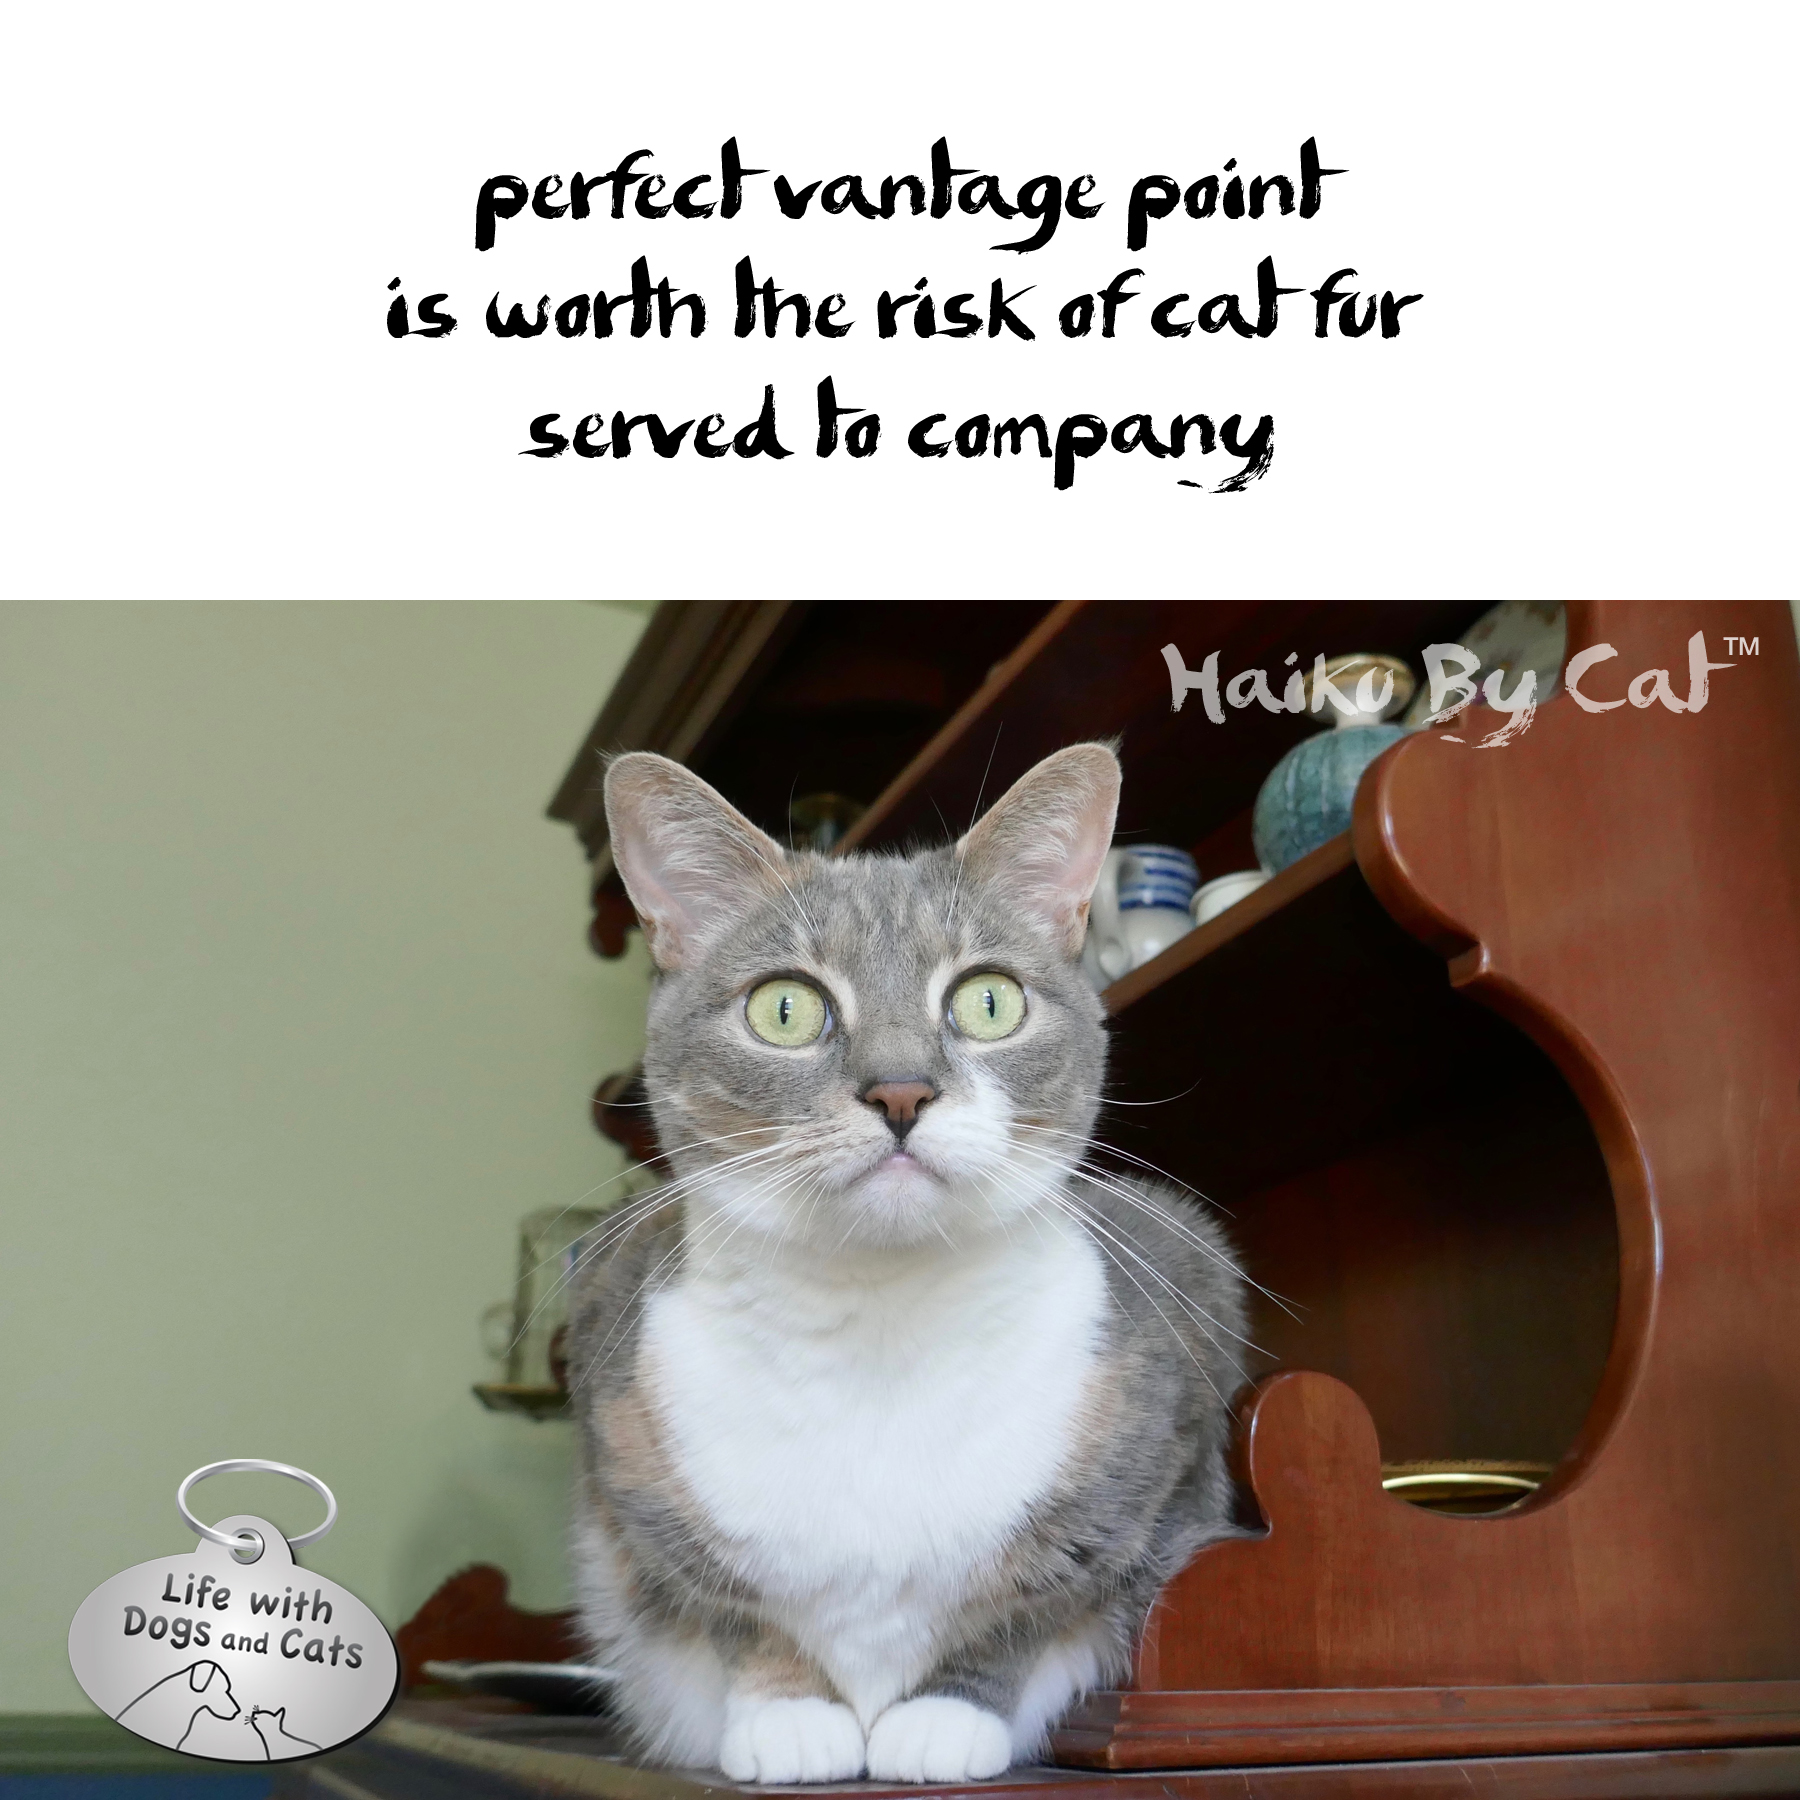 perfect vantage point / is worth the risk of cat fur / served to company #HaikuByCat #Haikusday #Micropoetry